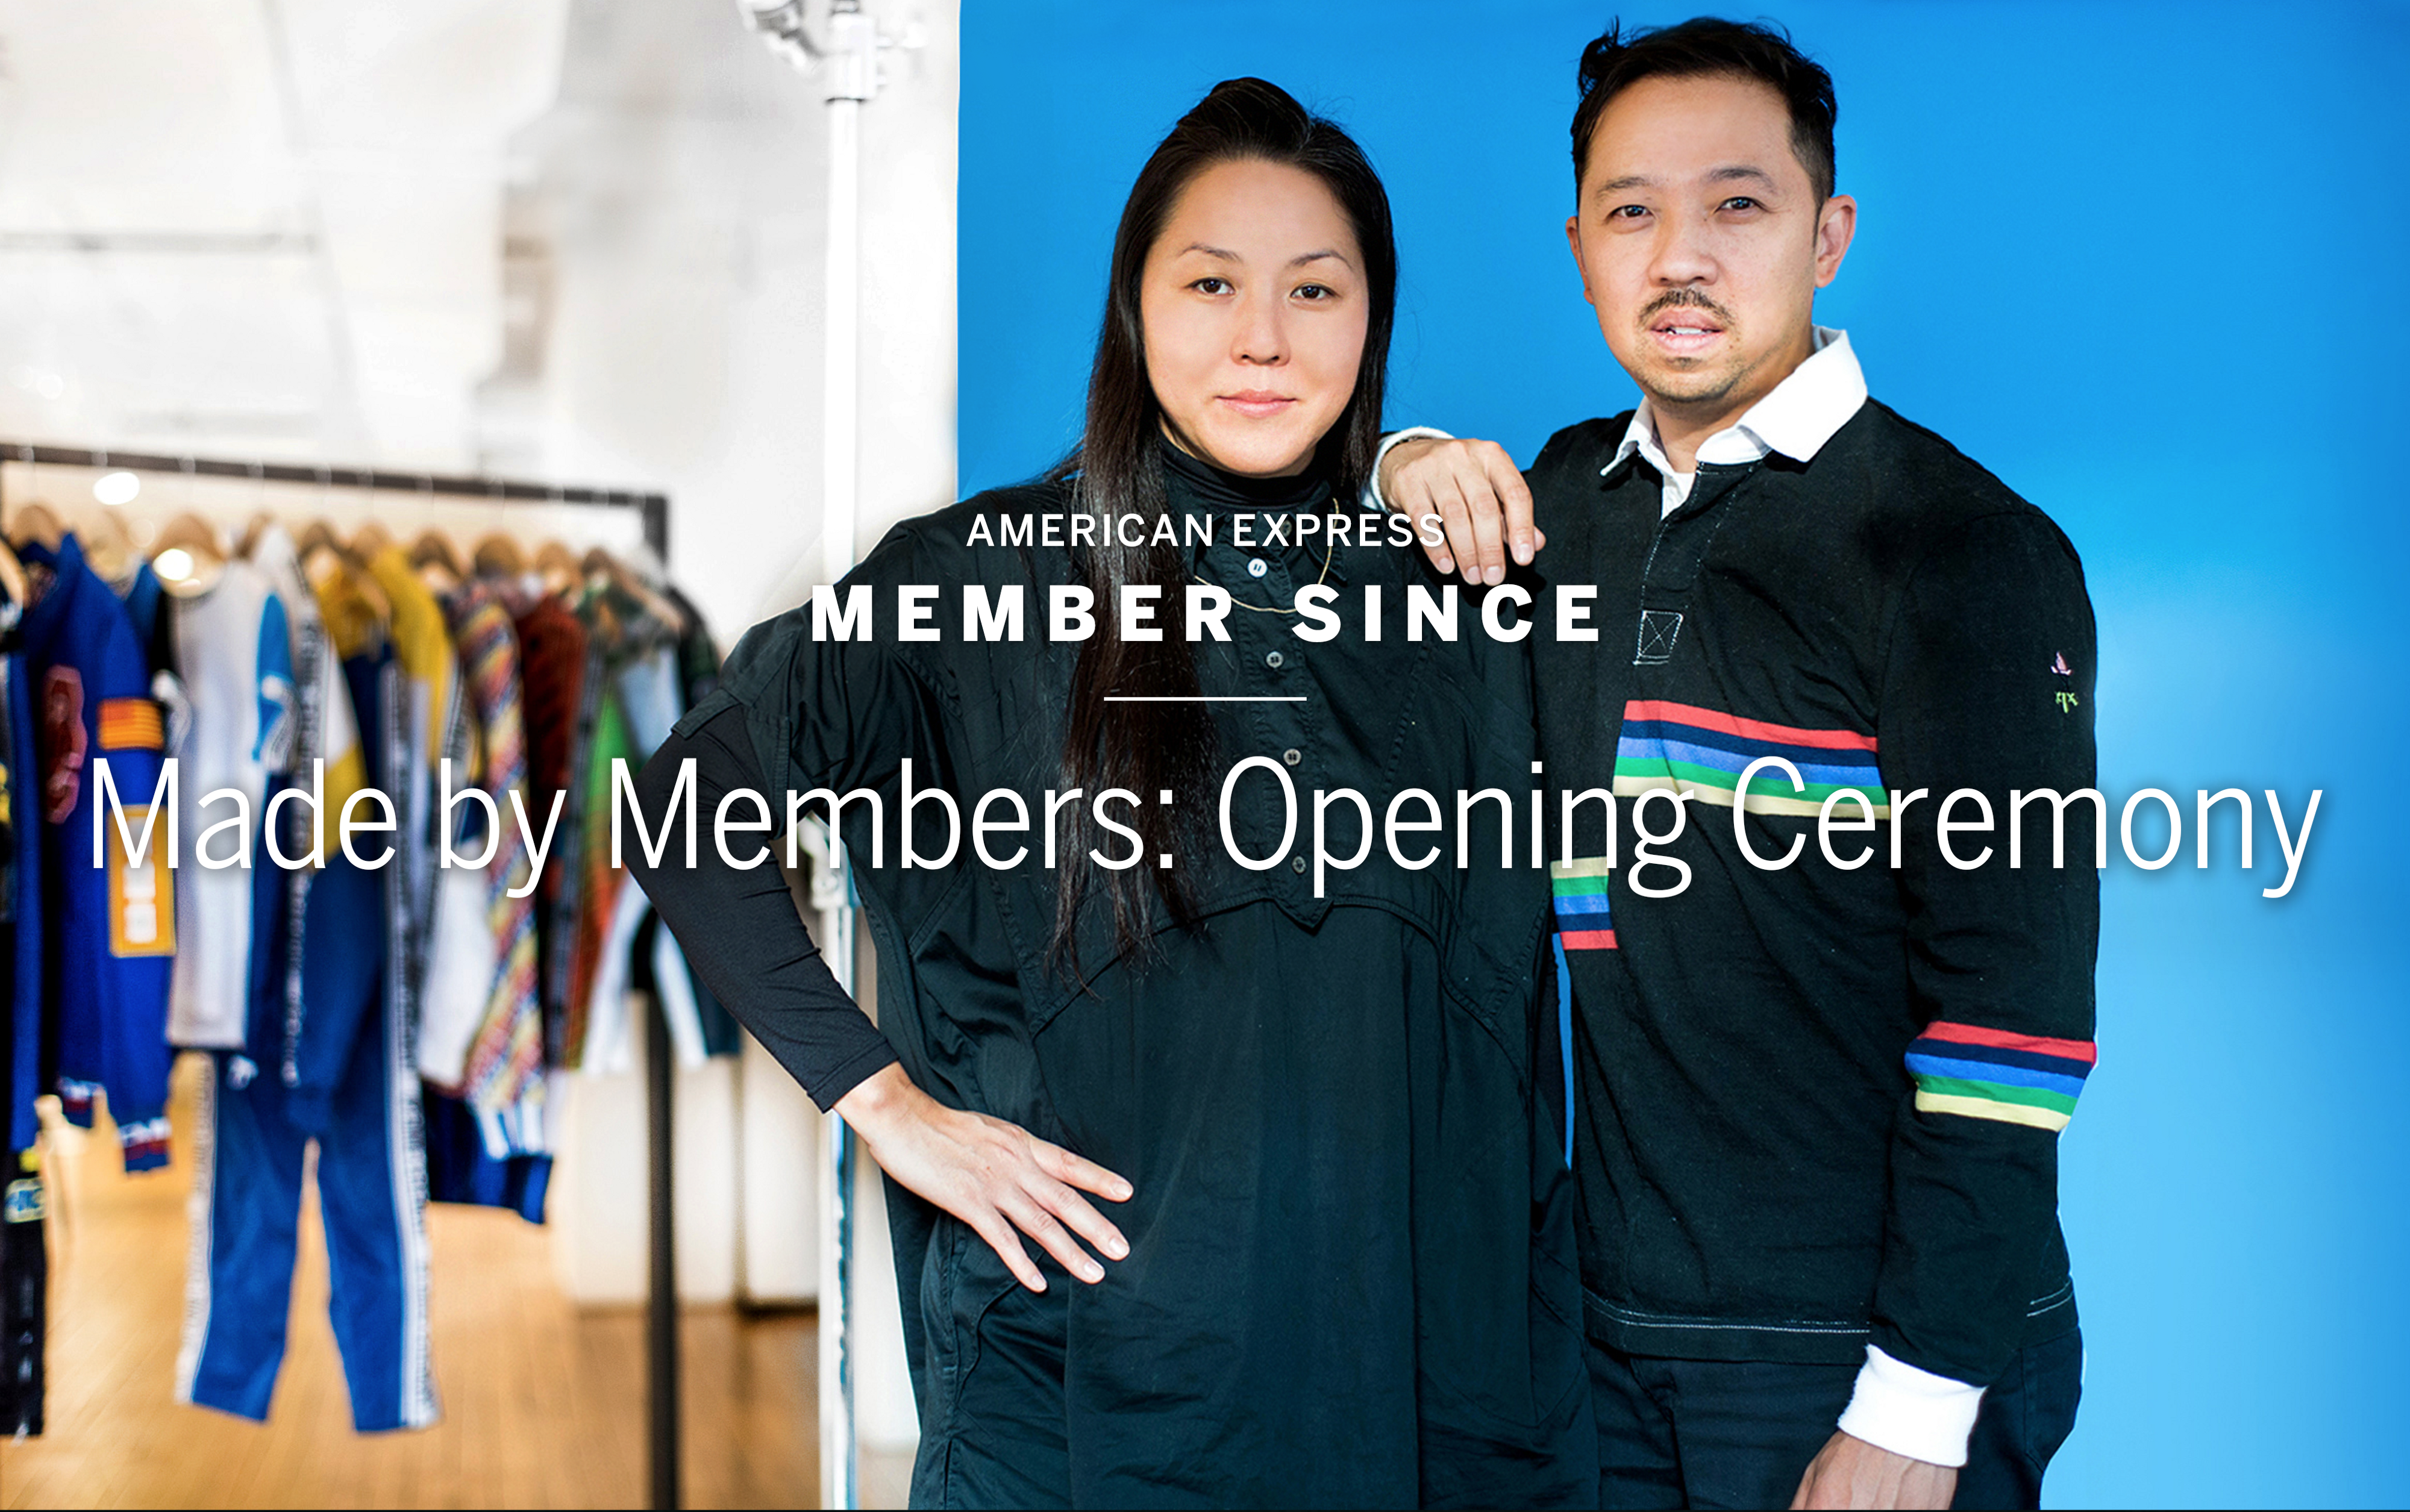 Made by Members: Opening Ceremony - Member Since